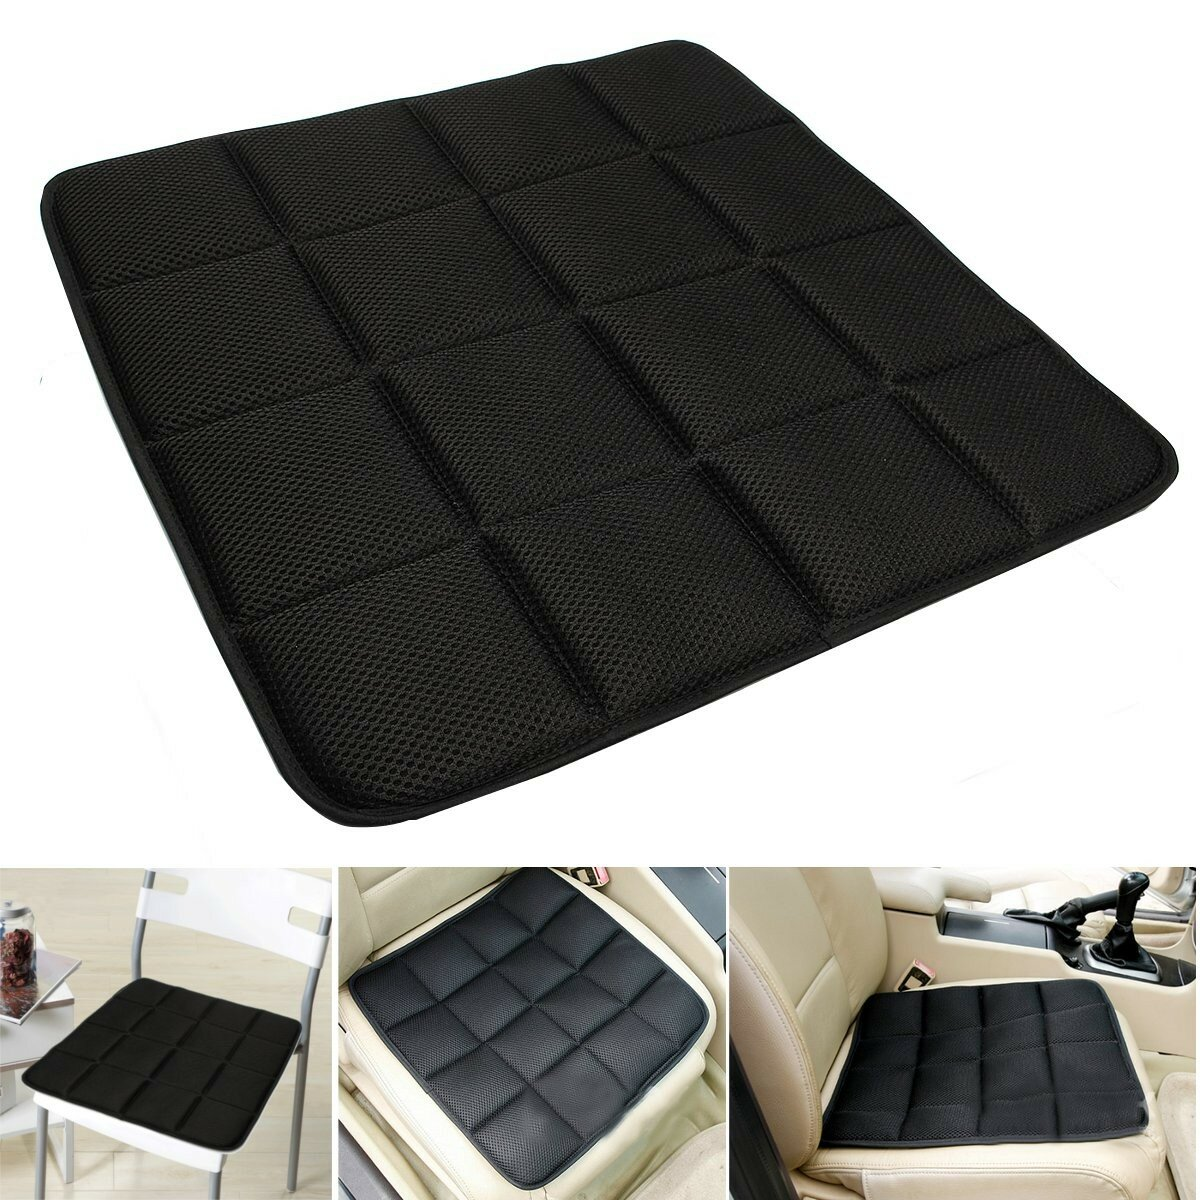 large chair covers for sale skyline tufted hot bamboo charcoal breathable seat cushion cover pad